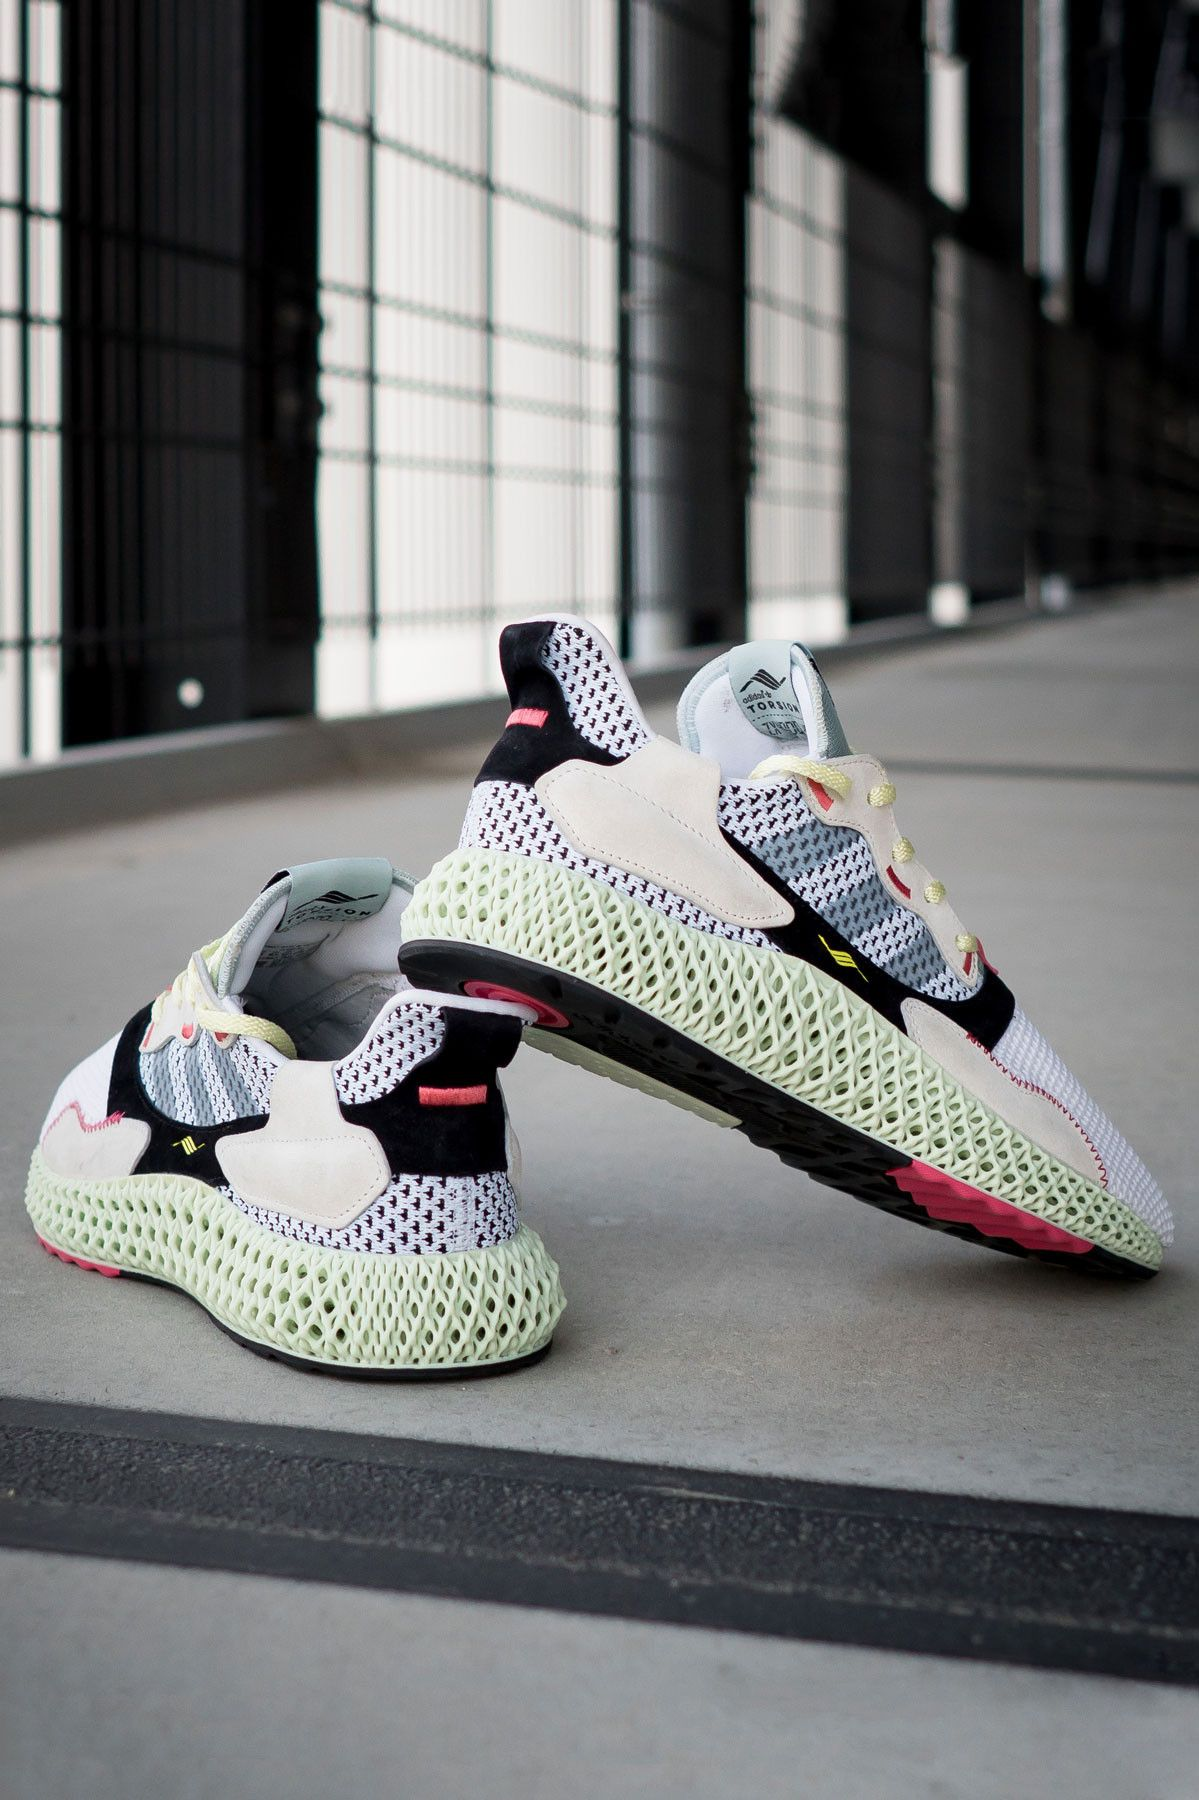 cbbd68c1b adidas zx 4000 4d sample randy galang futurecraft fall winter 2018 black  tan beige white mesh woven cream B42203 FTWR WHT GREY TWO LINEN GREEN back  rear ...